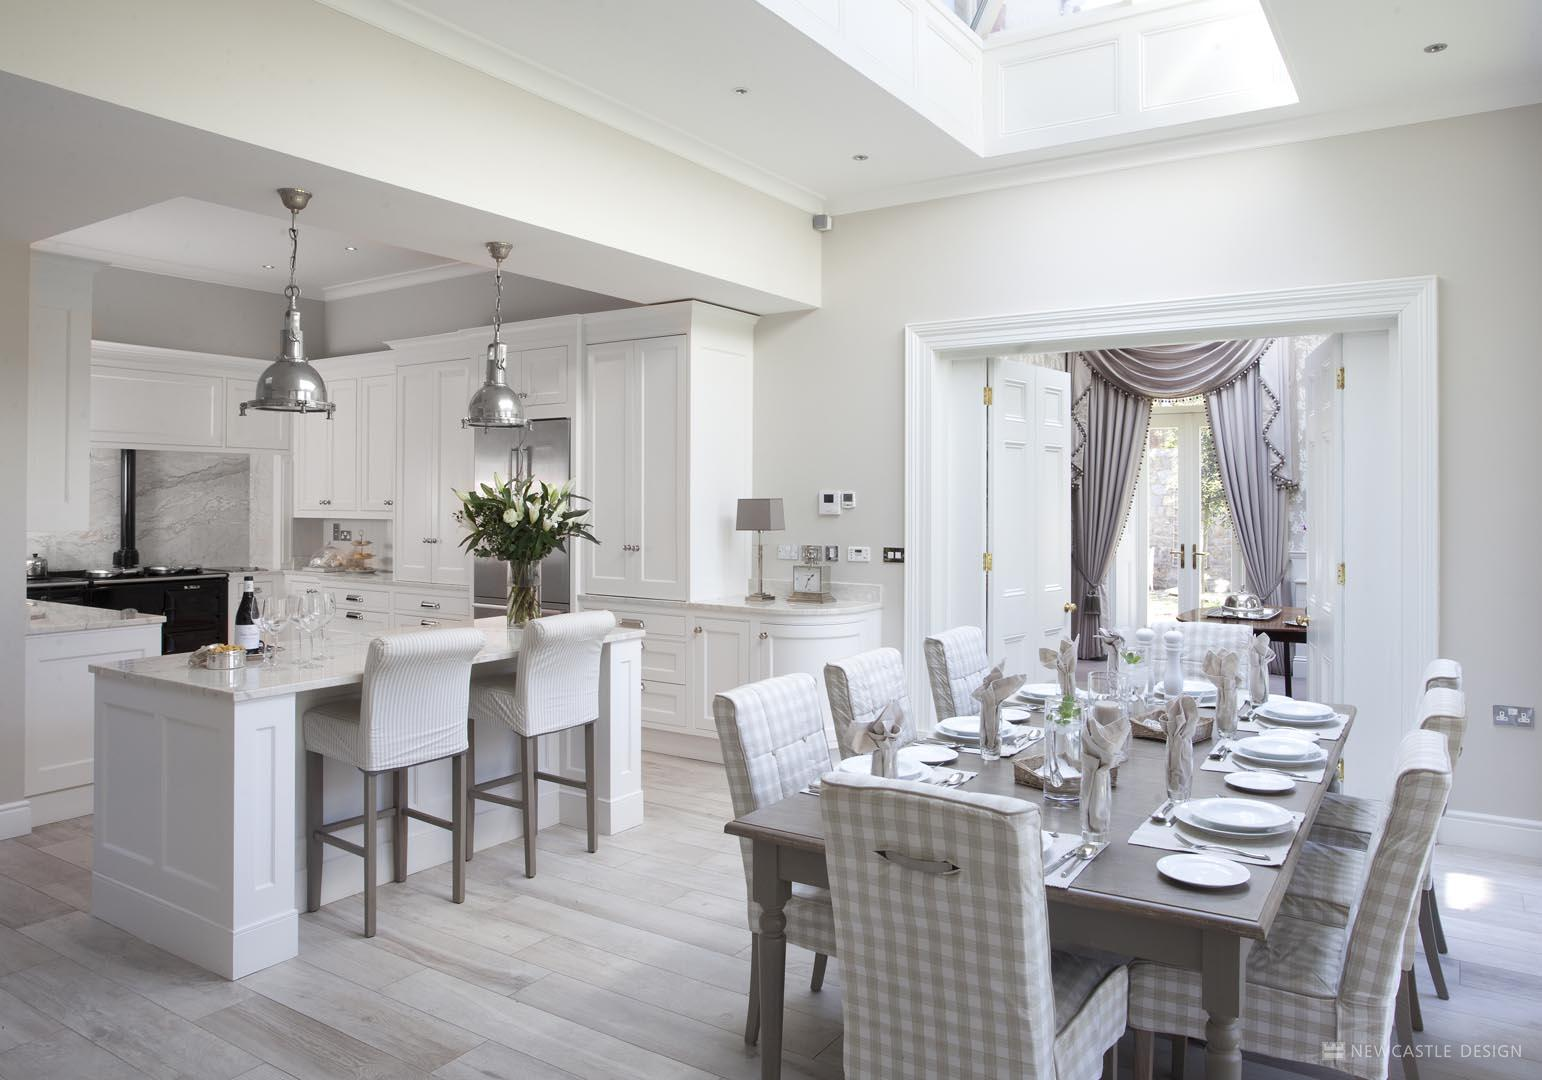 Kitchen Dining Room Designs   Get Inspired with Newcastle Design